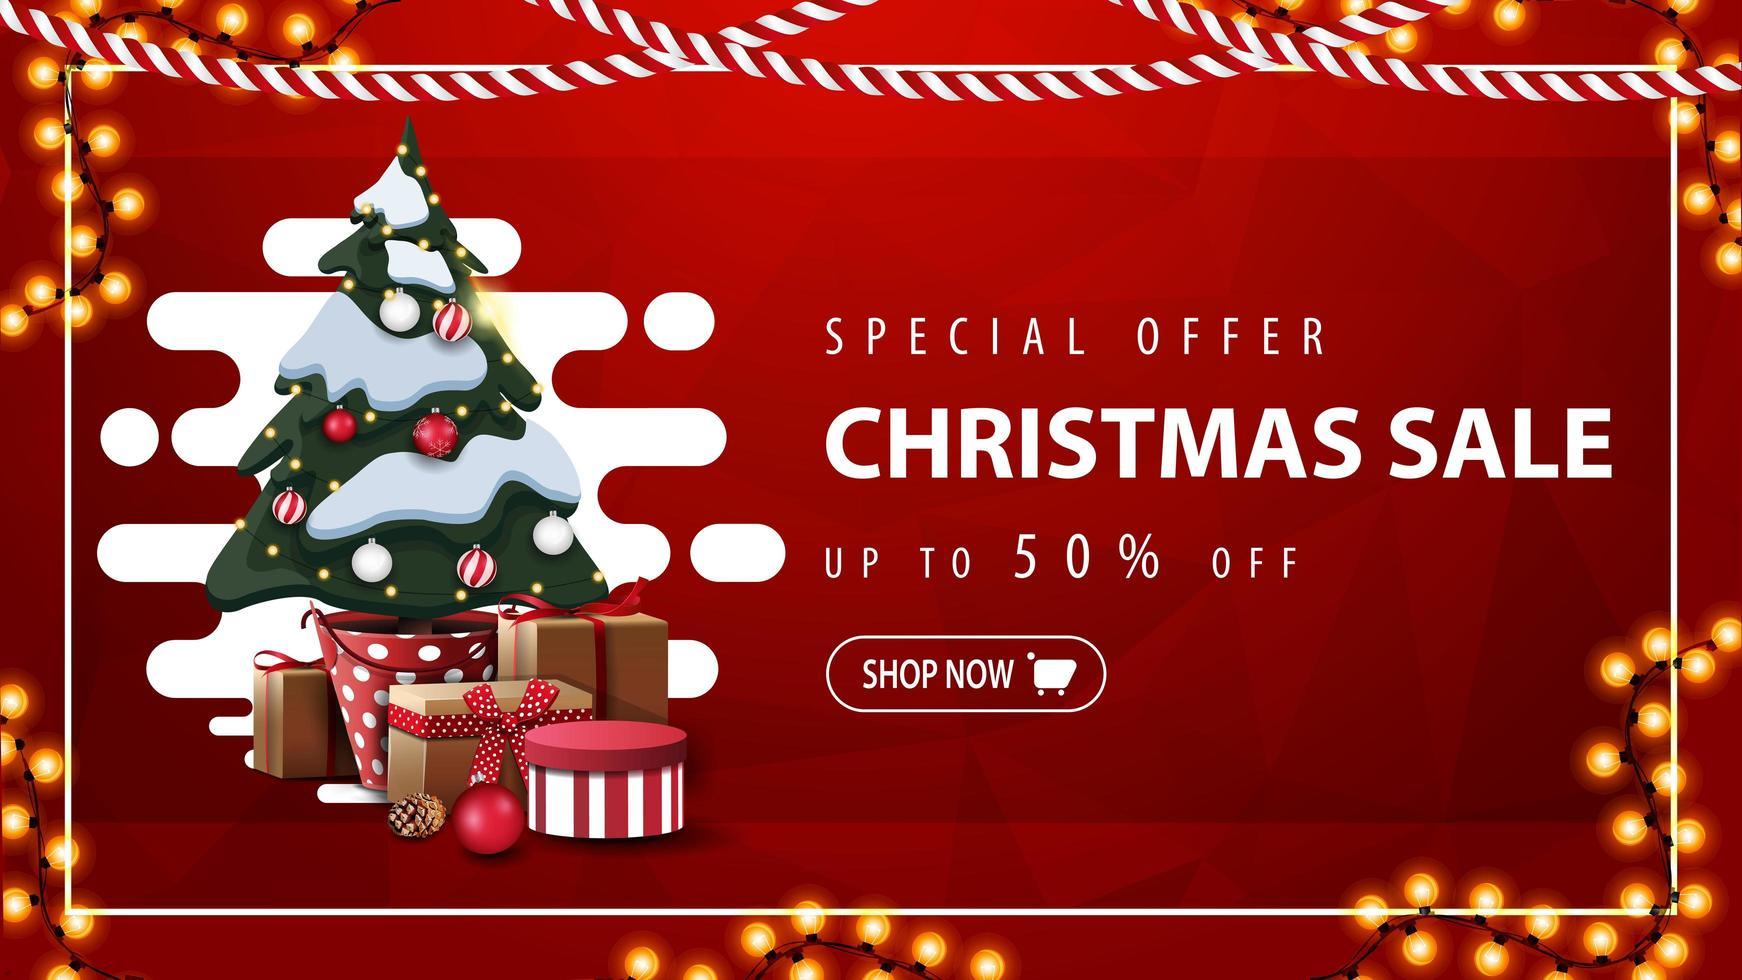 Special offer, Christmas sale, up to 50 off, red discount banner with abstract liquid shape, garland and Christmas tree in a pot with gifts vector